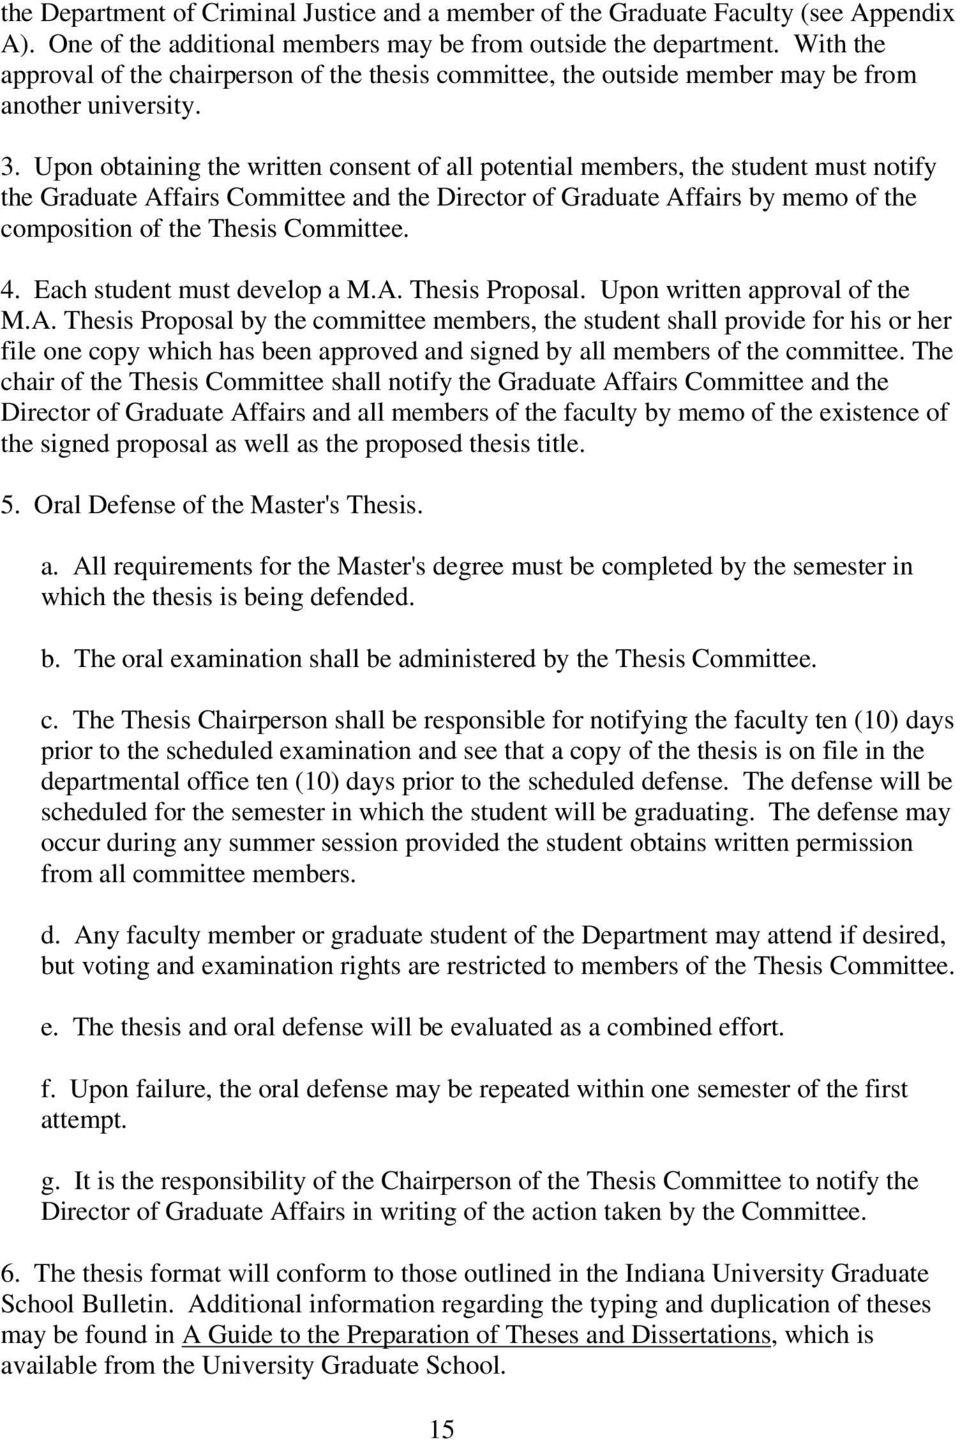 Upon obtaining the written consent of all potential members, the student must notify the Graduate Affairs Committee and the Director of Graduate Affairs by memo of the composition of the Thesis